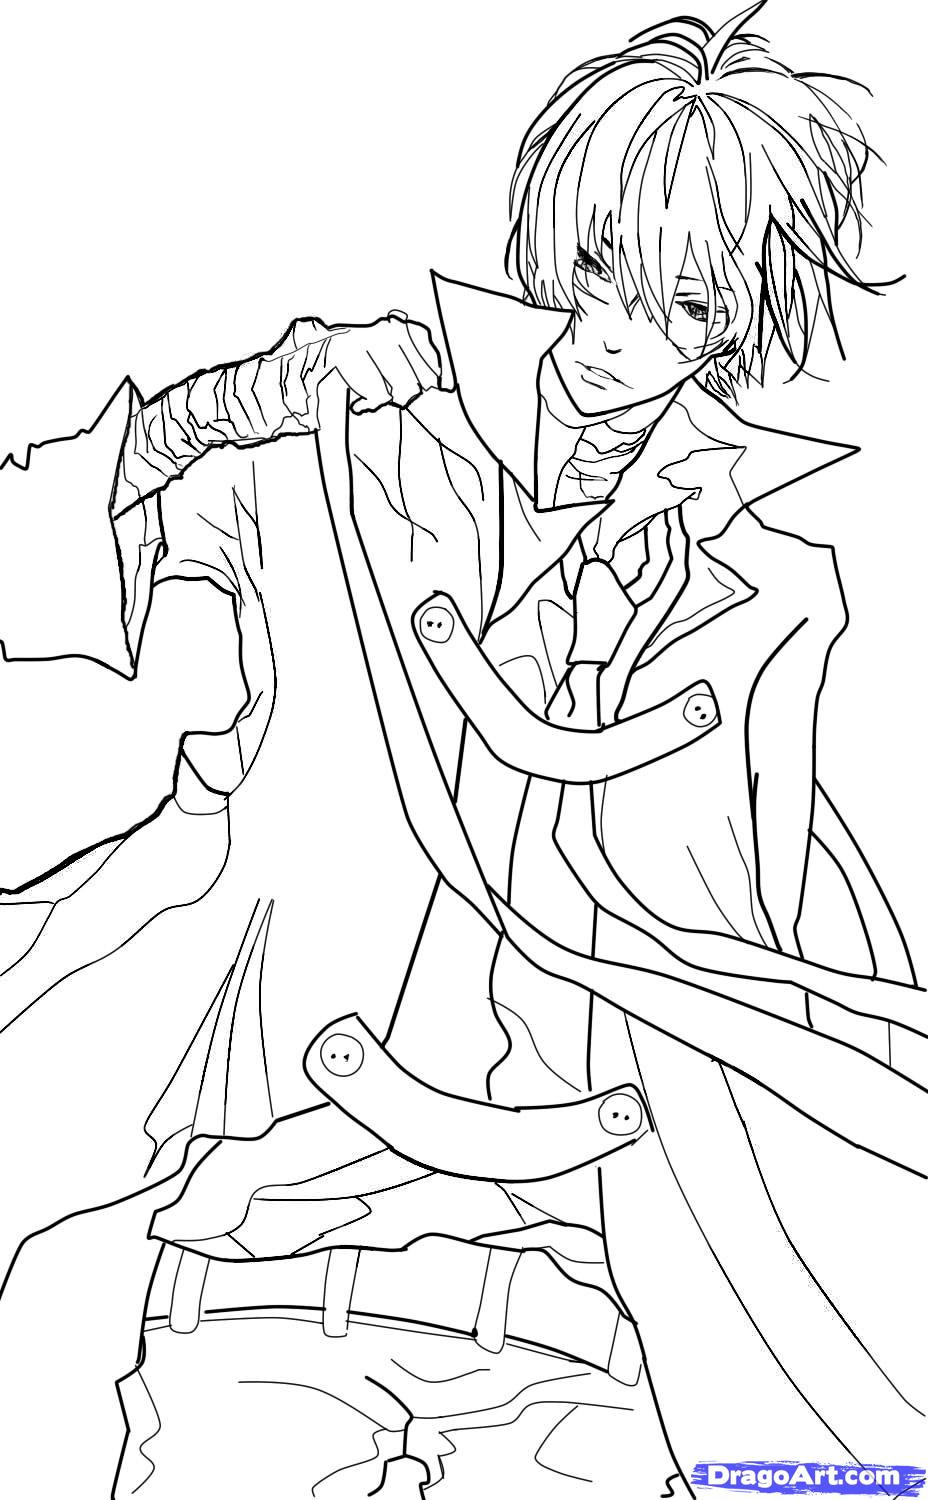 Anime Boys Coloring Pages Easy  How to Sketch an Anime Boy Step by Step Anime People